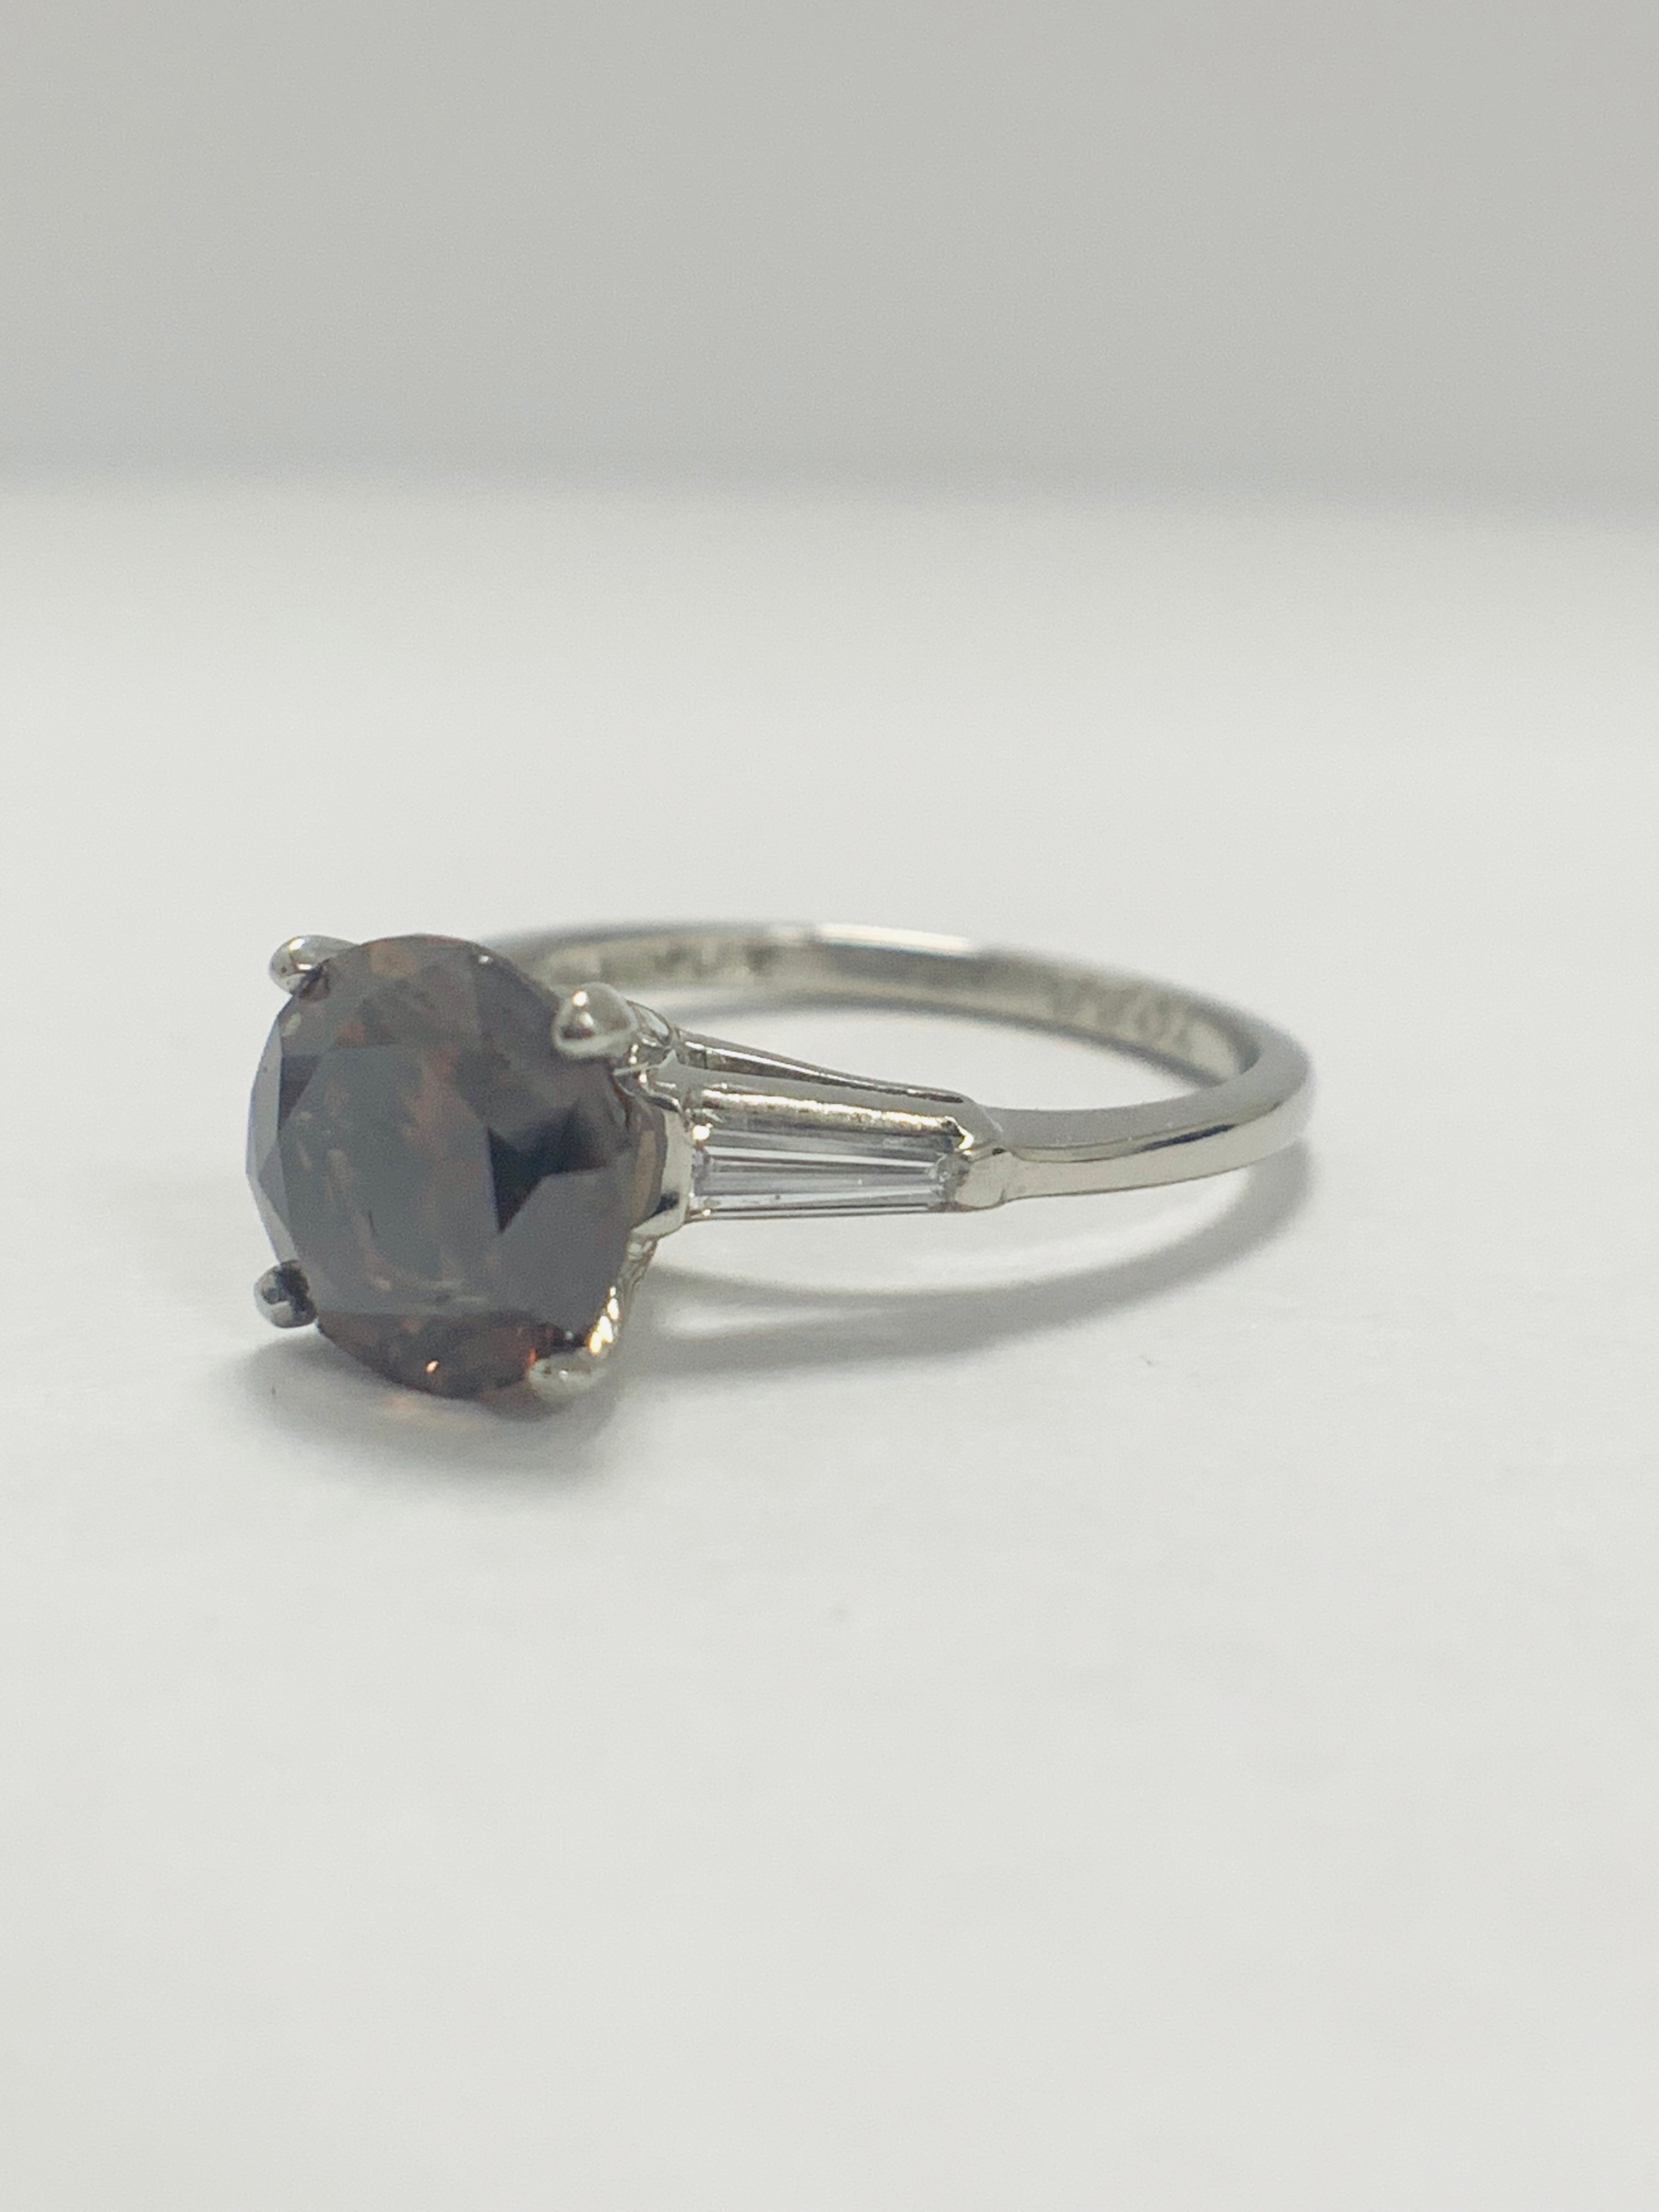 Platinum Diamond ring featuring centre, round brilliant cut, deep orangey brown Diamond (2.15ct) - Image 5 of 14